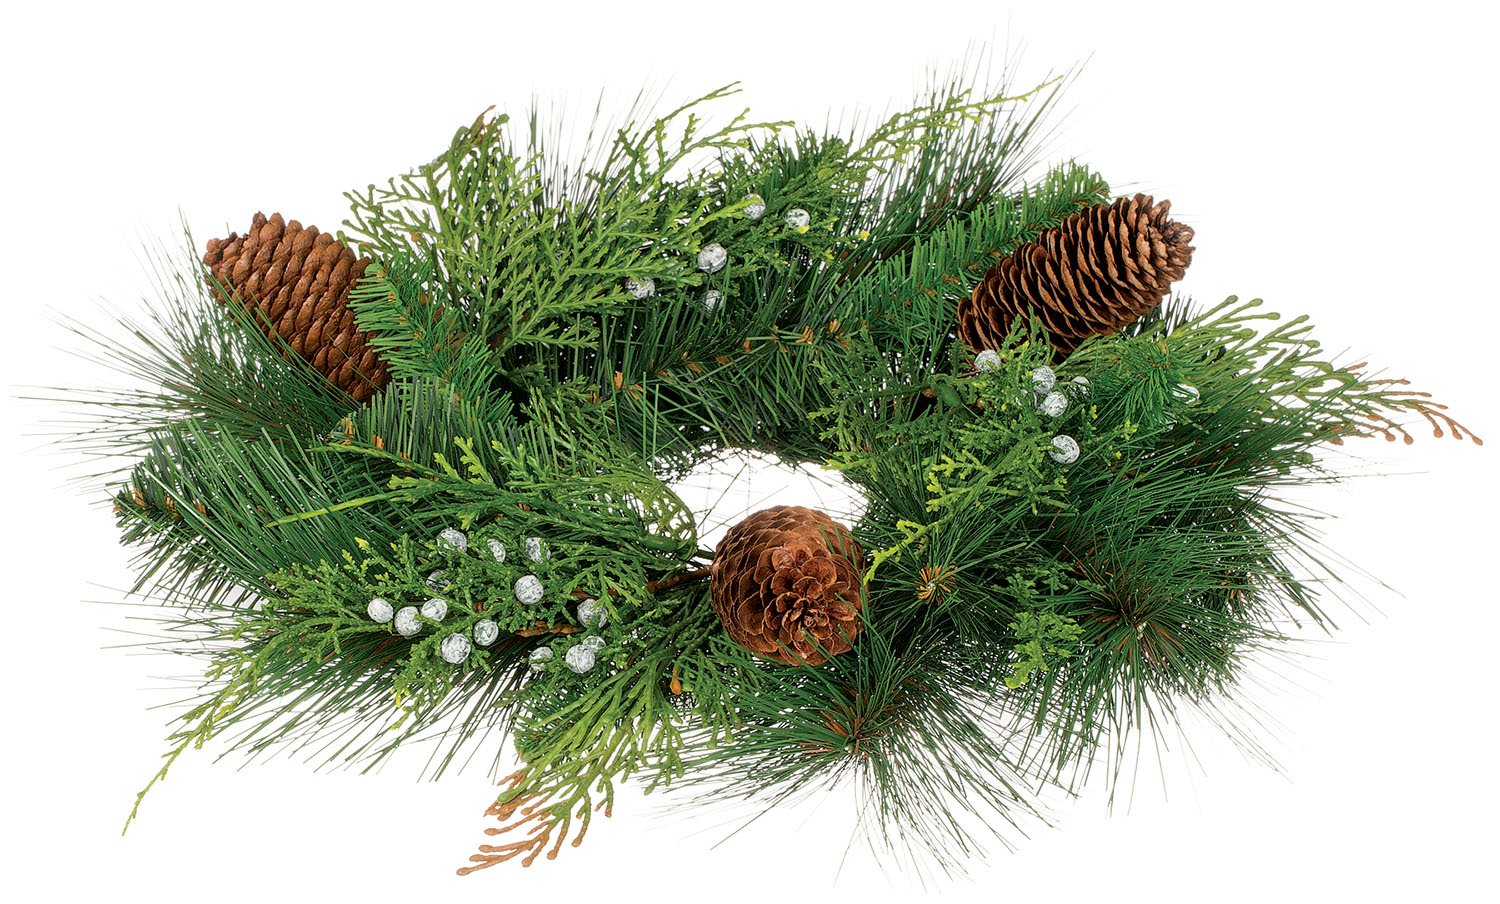 13 Inch Diameter Christmas Mixed Pine Pillar Candle Ring With Cedar, Berries and Pine Cones